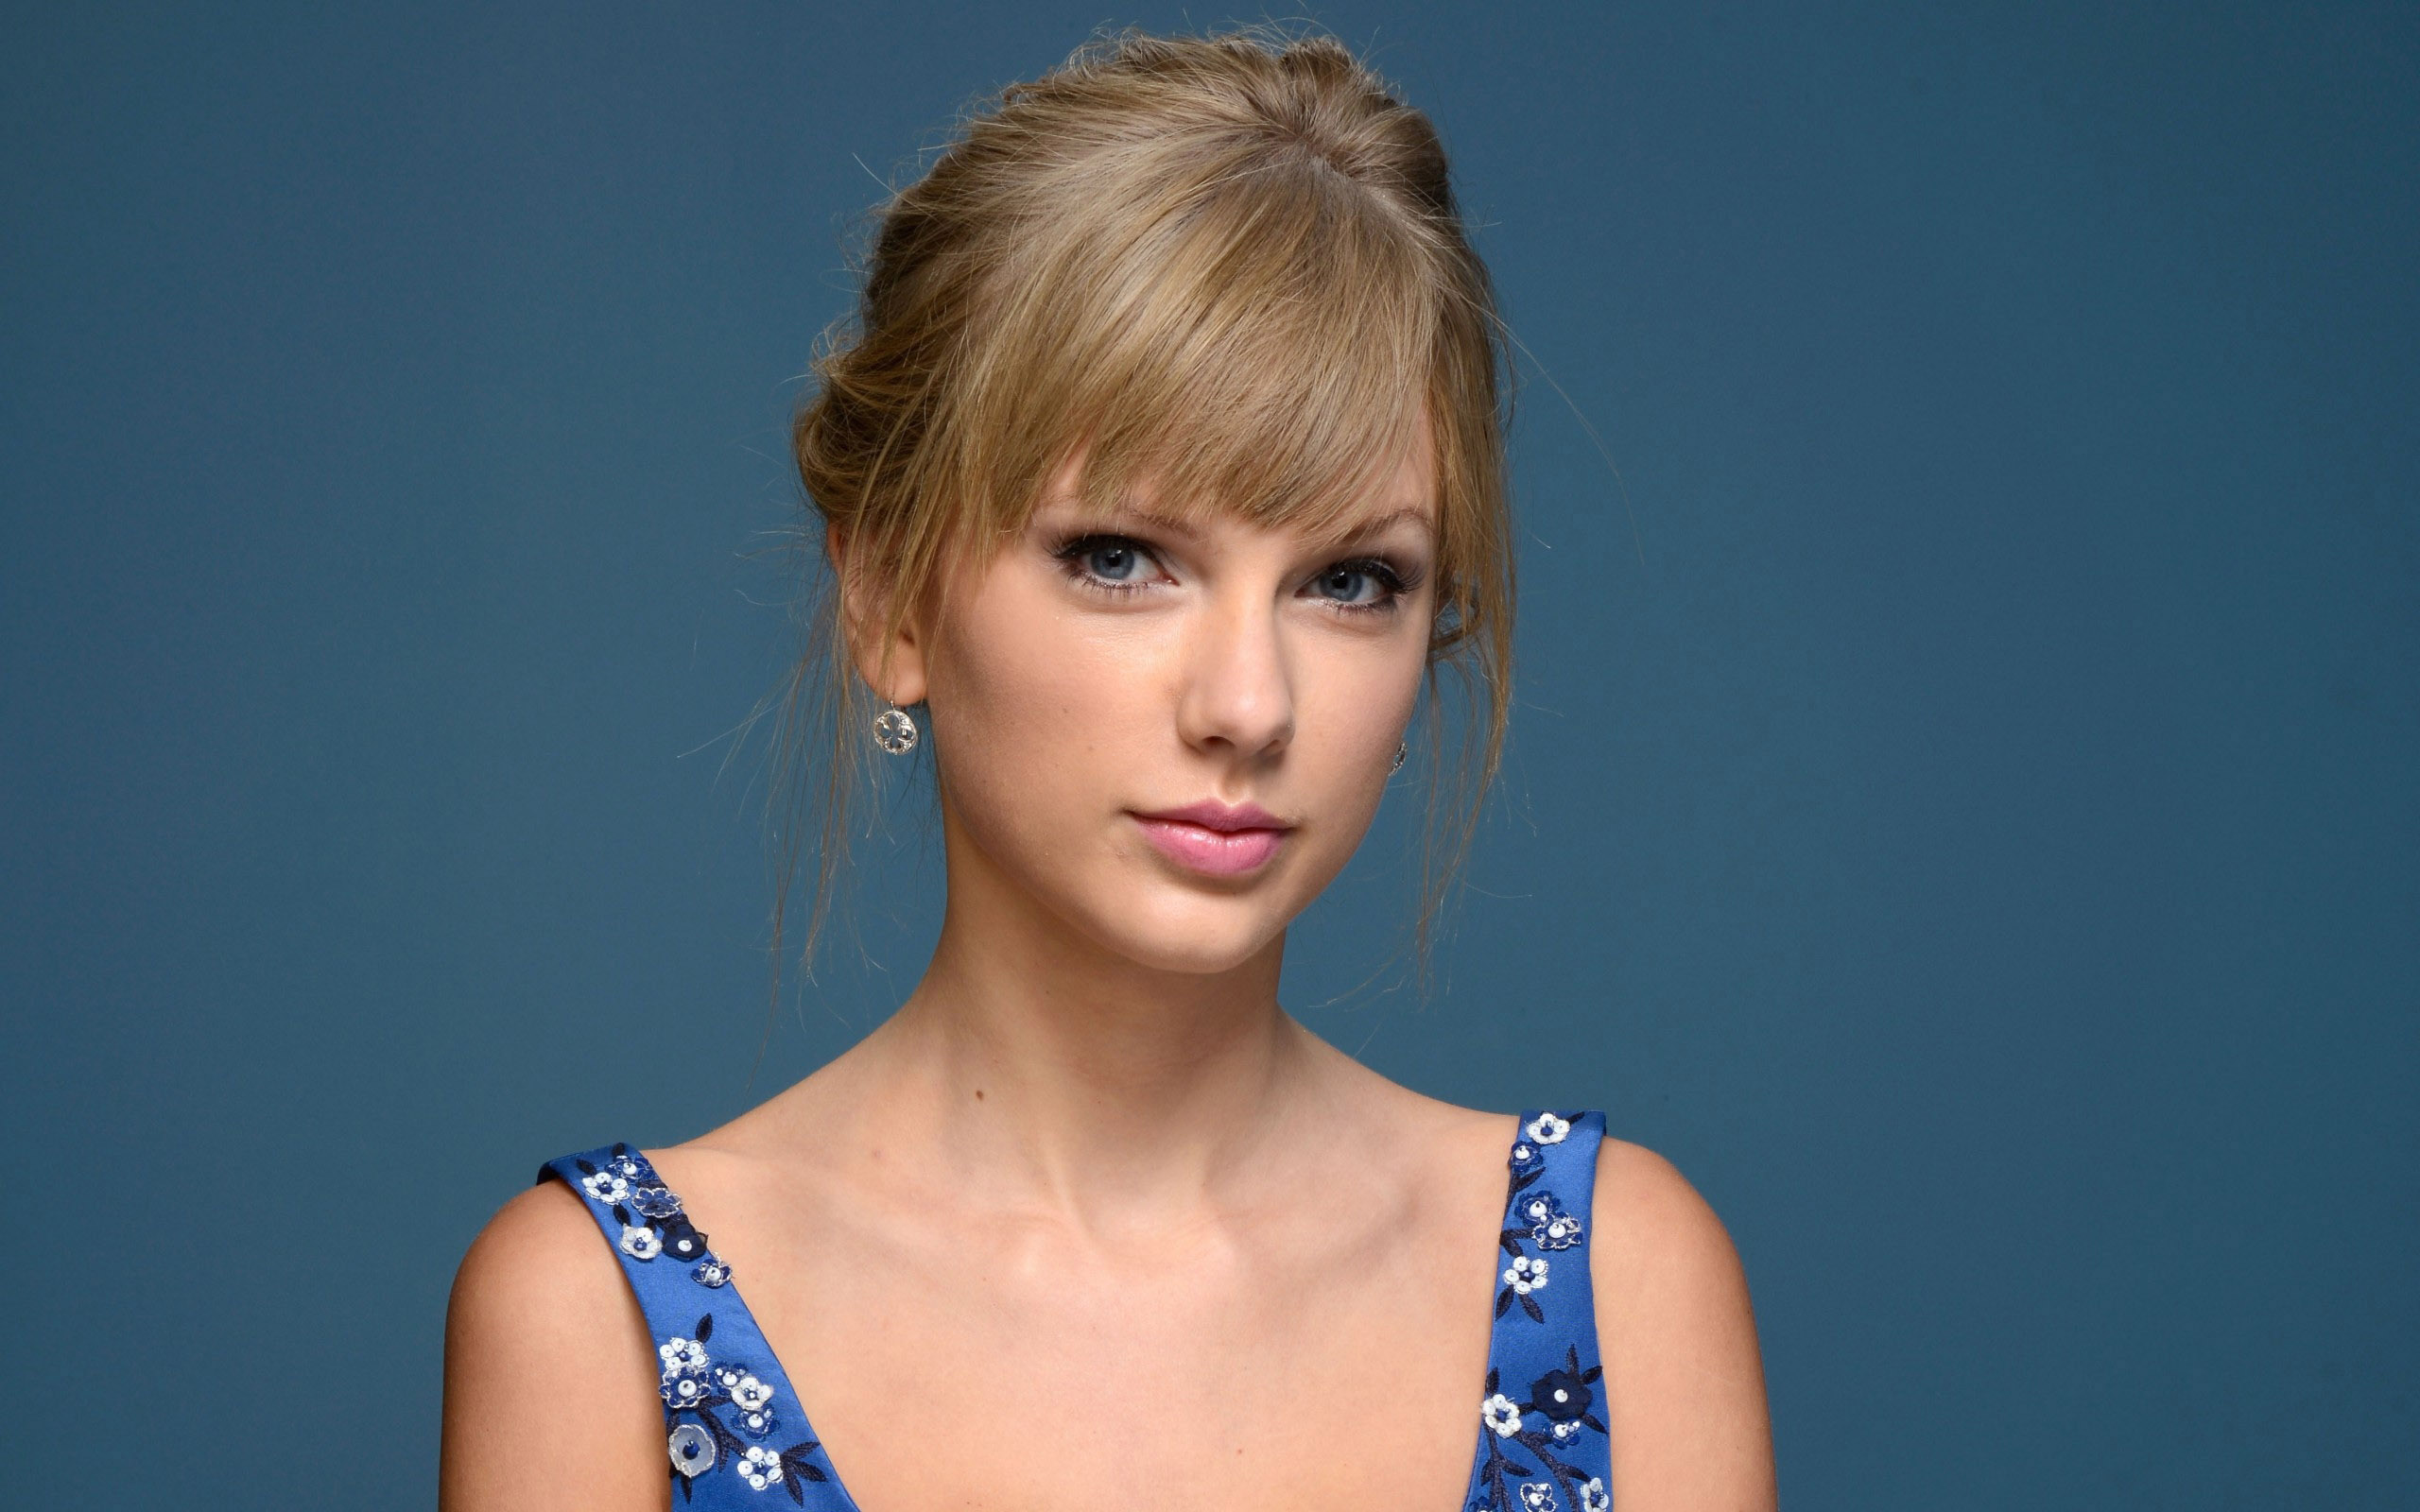 Taylor Swift Classic Look 216.43 Kb